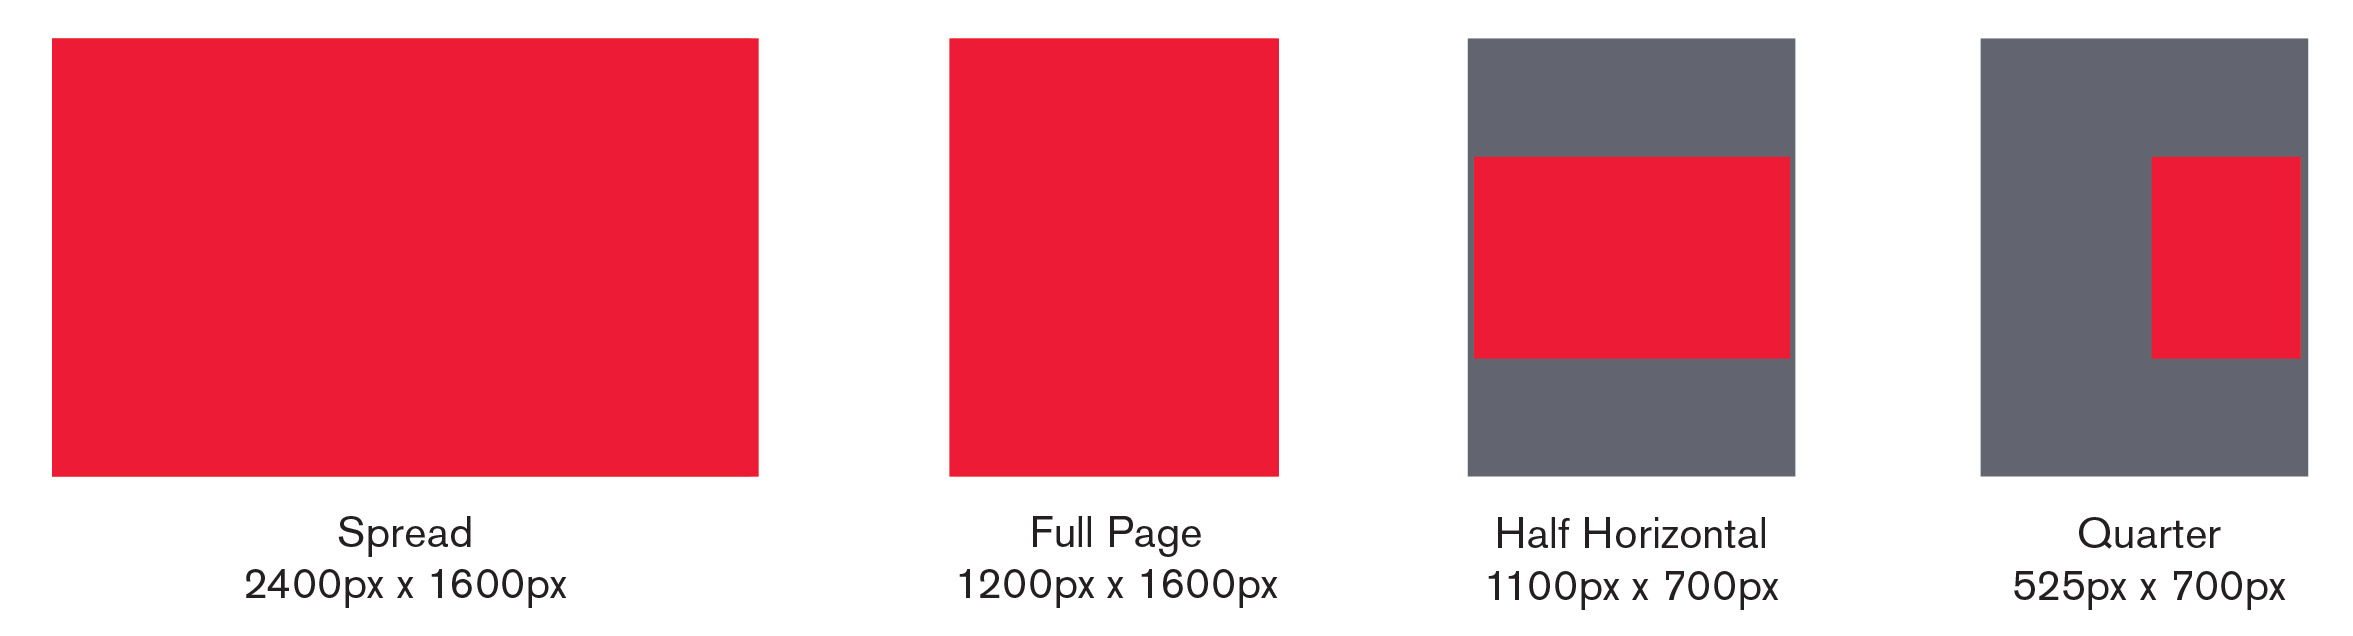 PUBLICATION AD SIZES